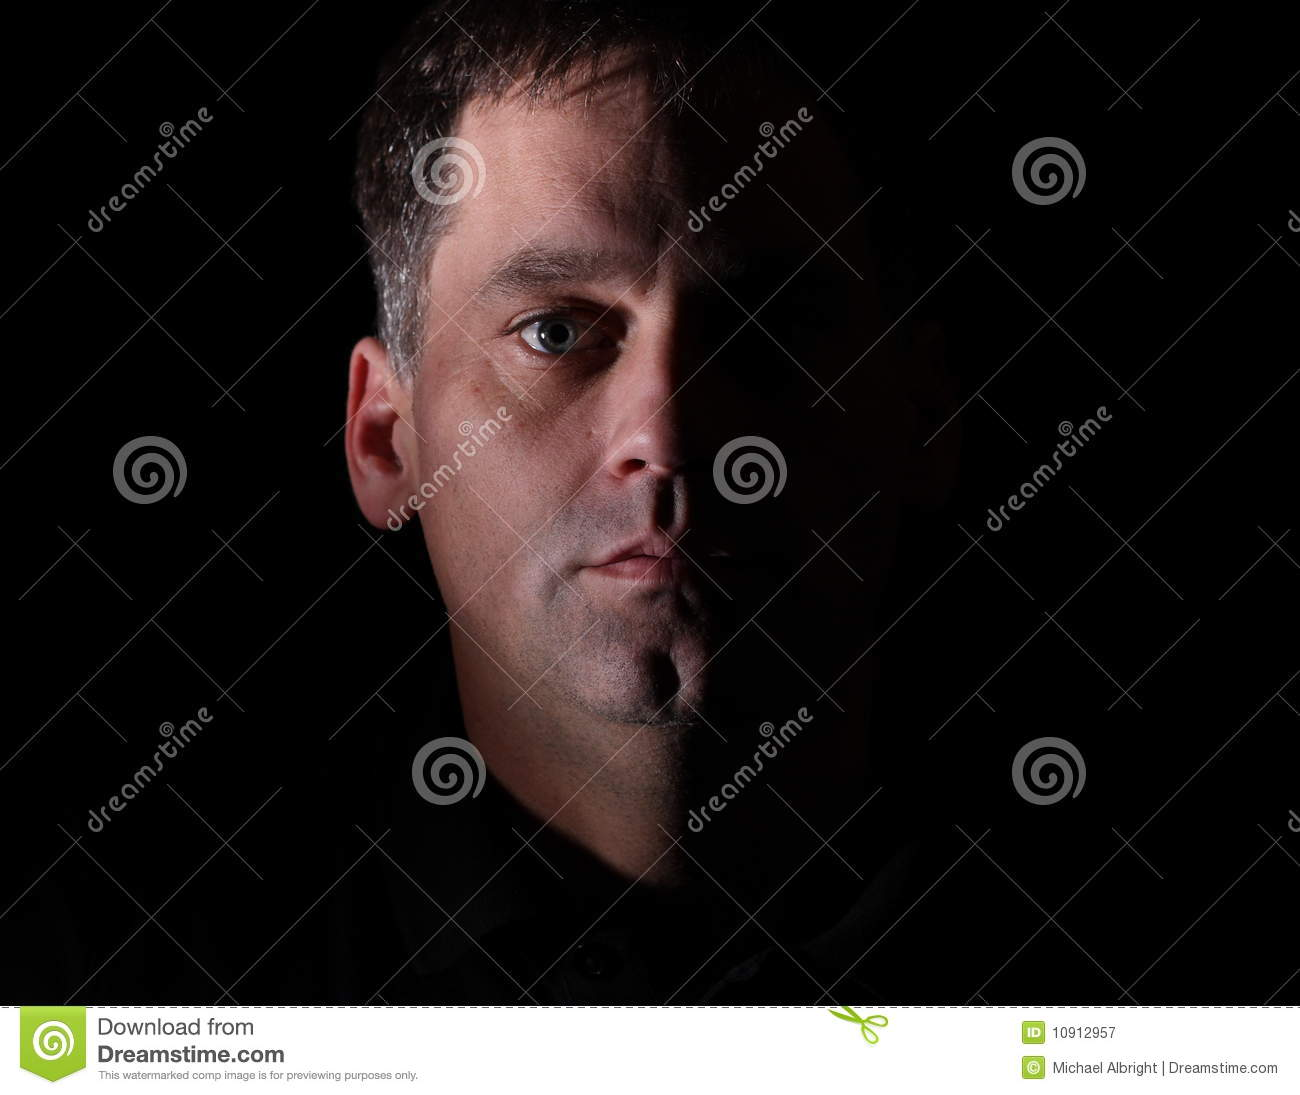 Portrait of man with serious look